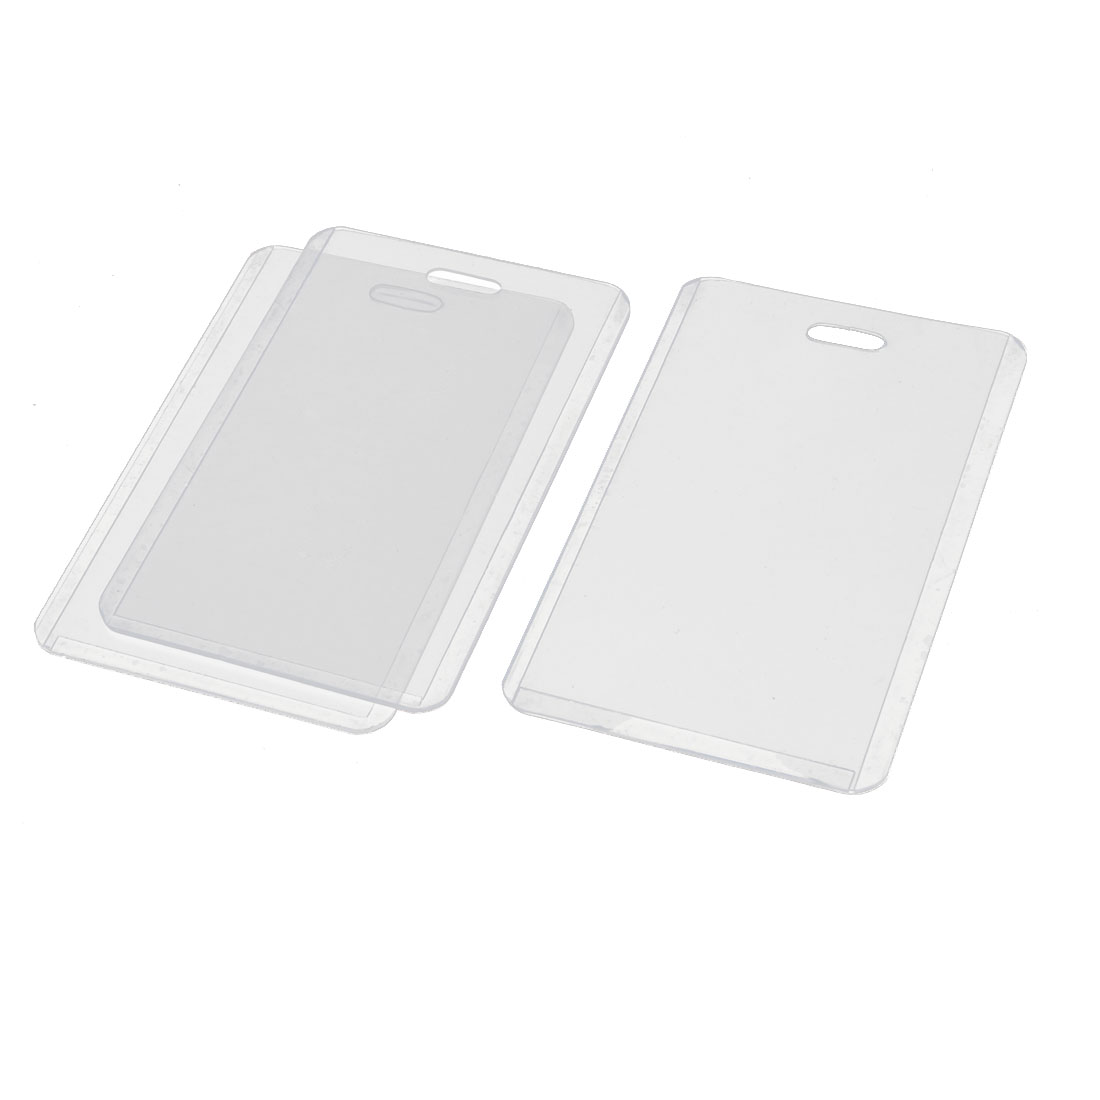 Clear Plastic Vertical Business ID Card Badge Holder Case Pouch 3pcs